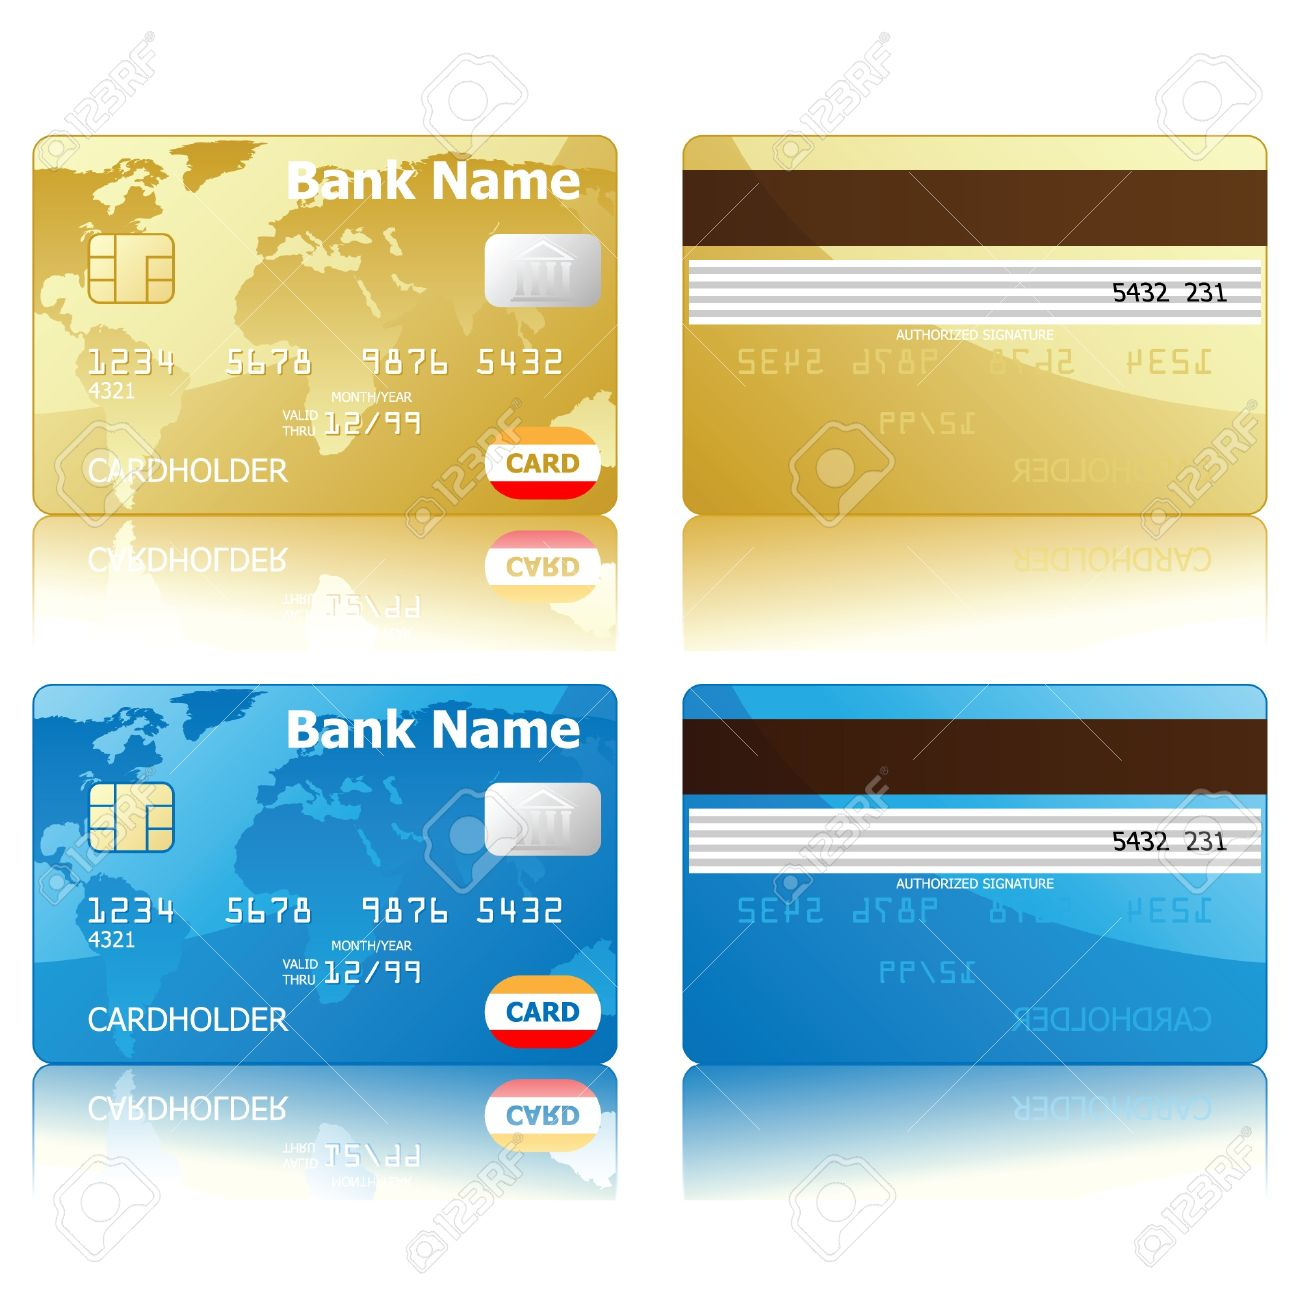 Credit Cards Front And Back View Royalty Free Cliparts Vectors